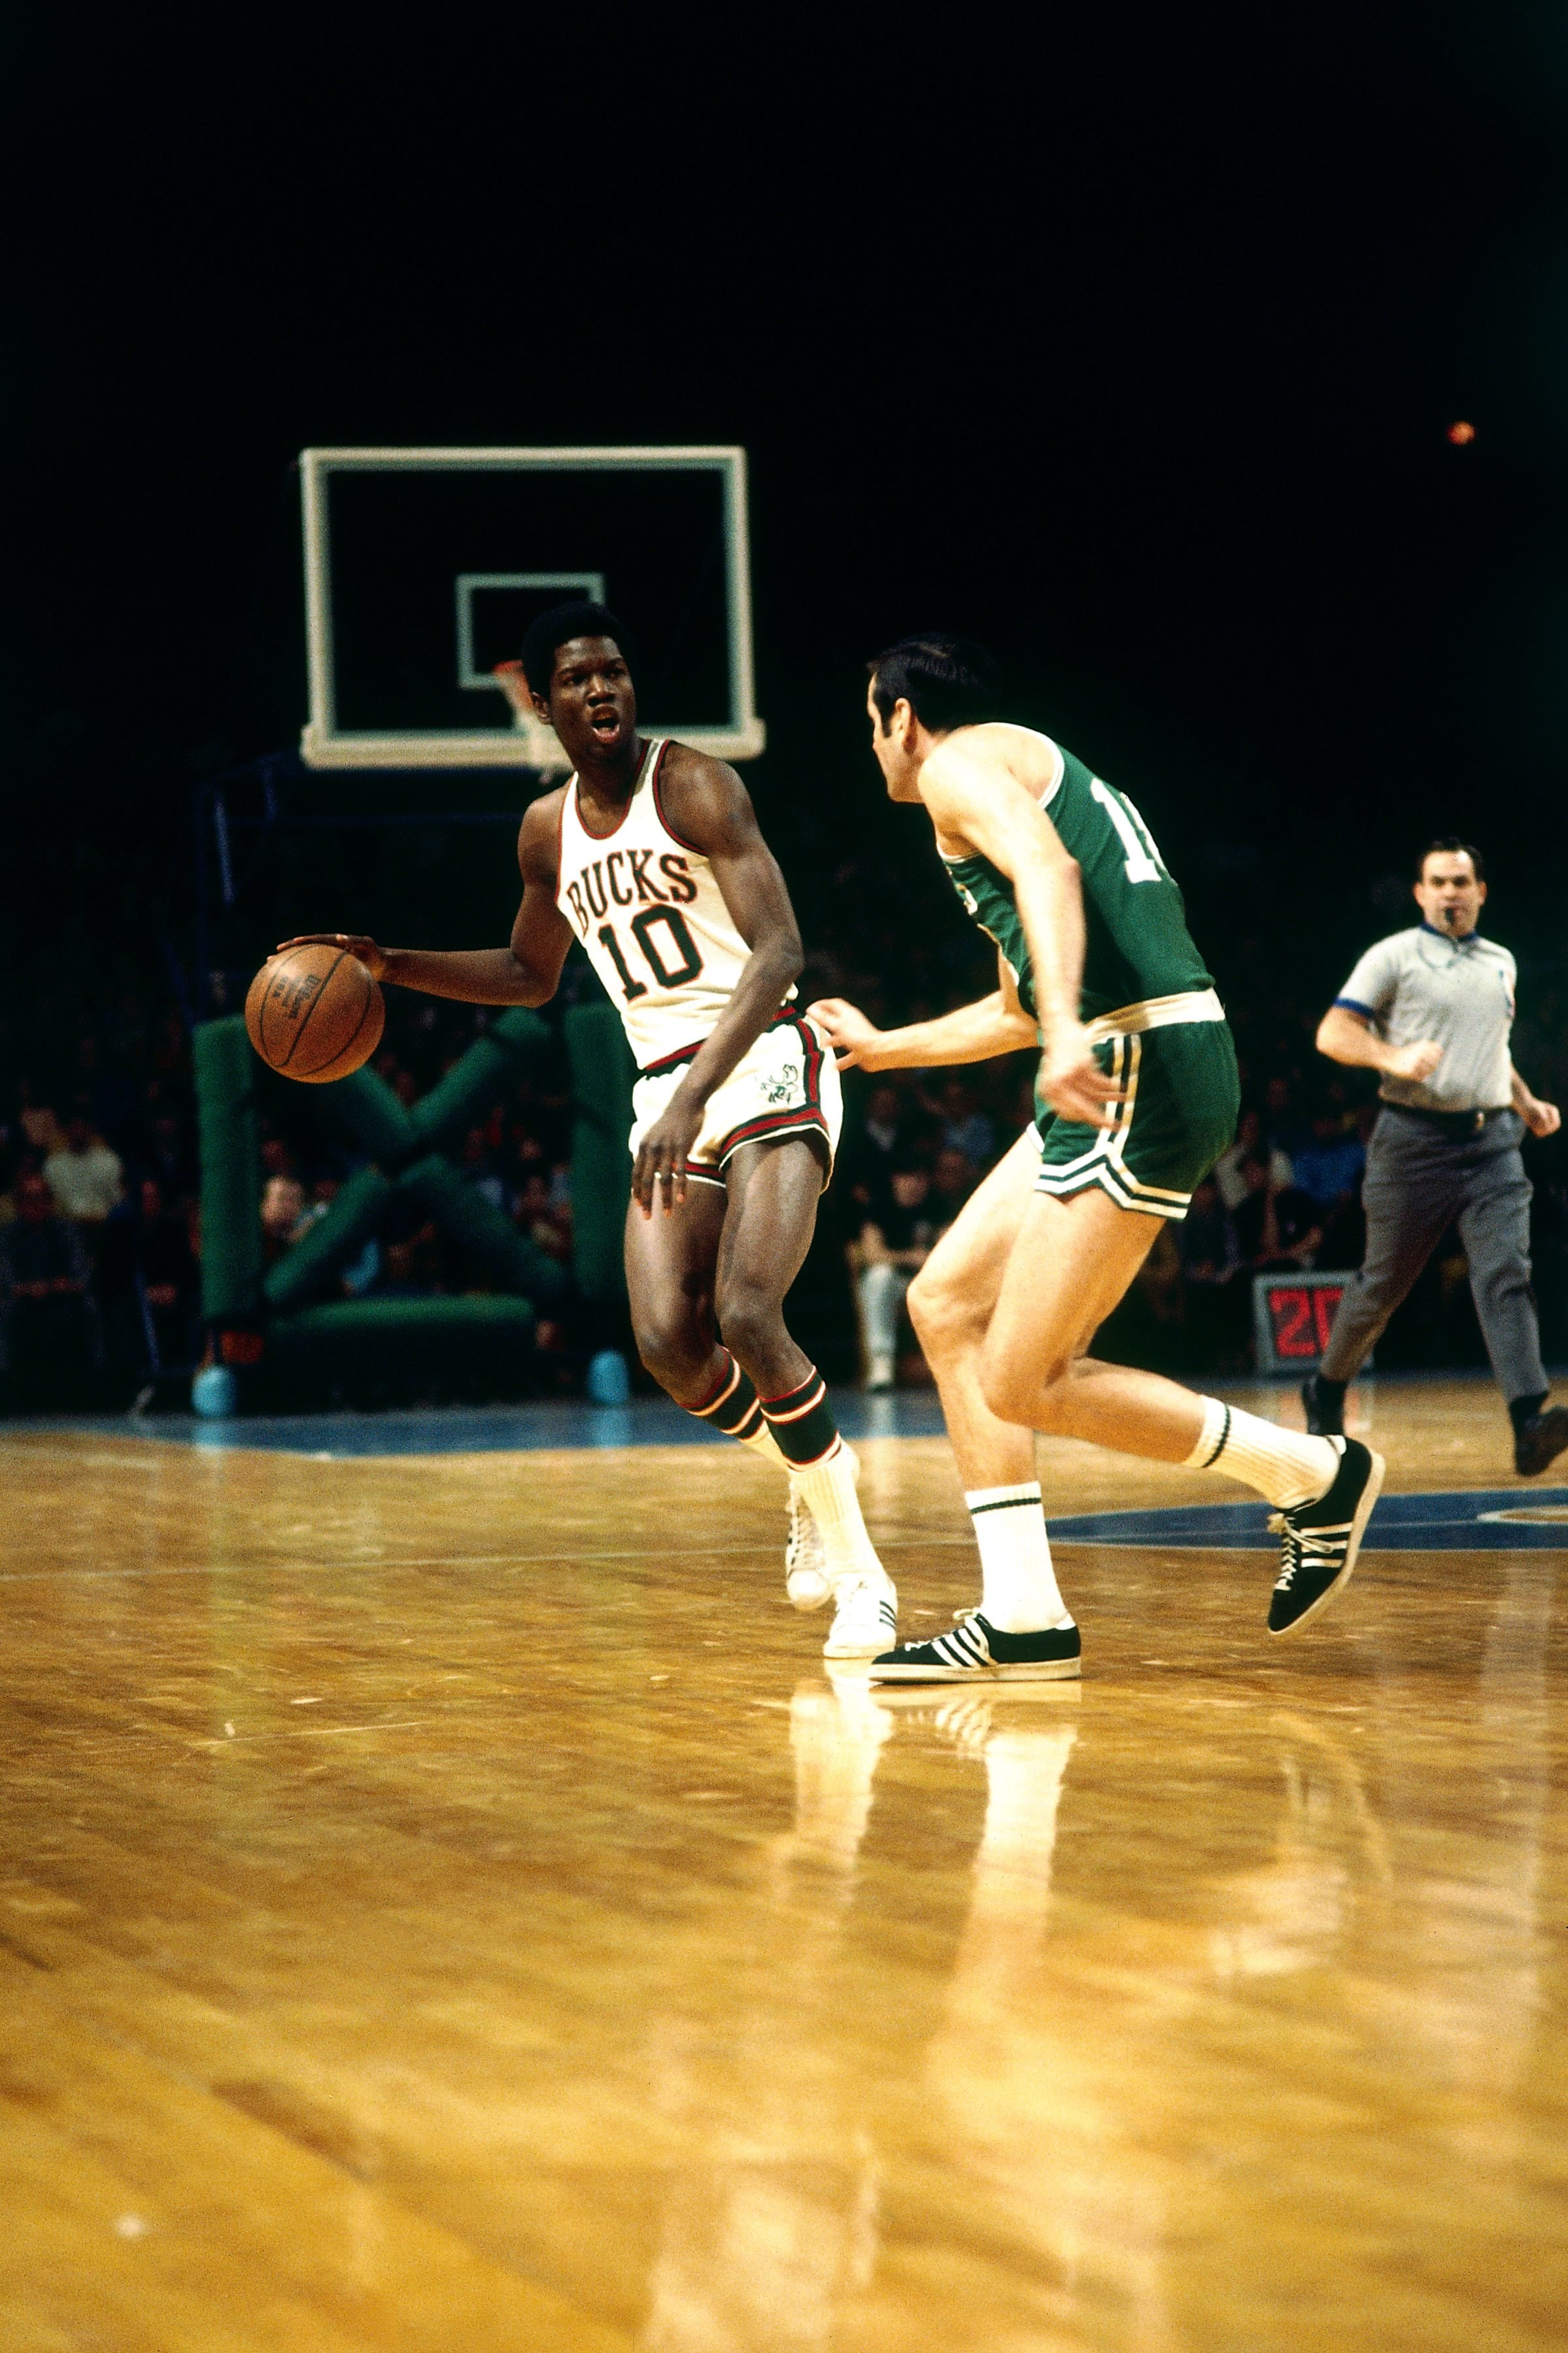 Bucks to Retire Number 10 in Honor of Bob Dandridge